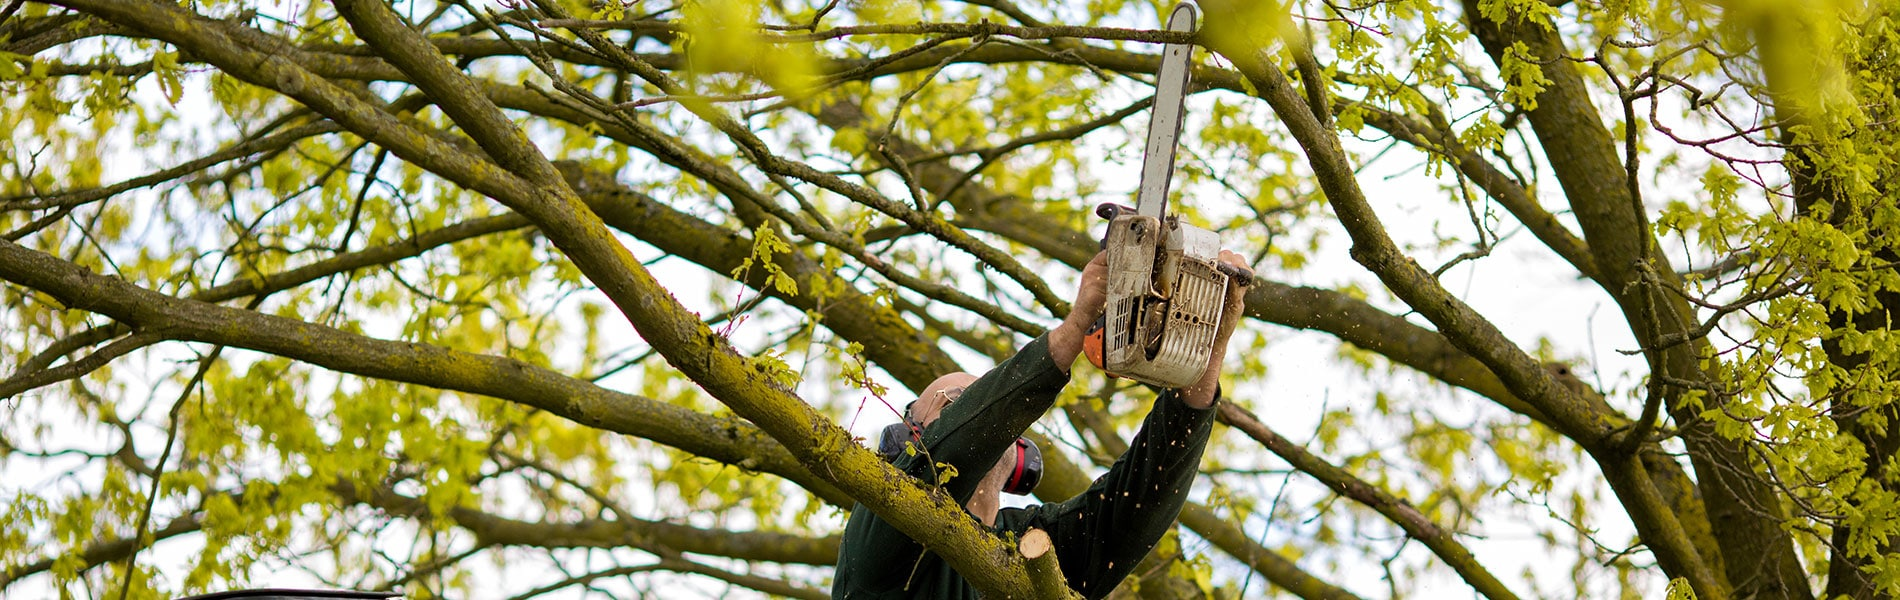 man reaching with a chainsaw to cut a branch on a tree